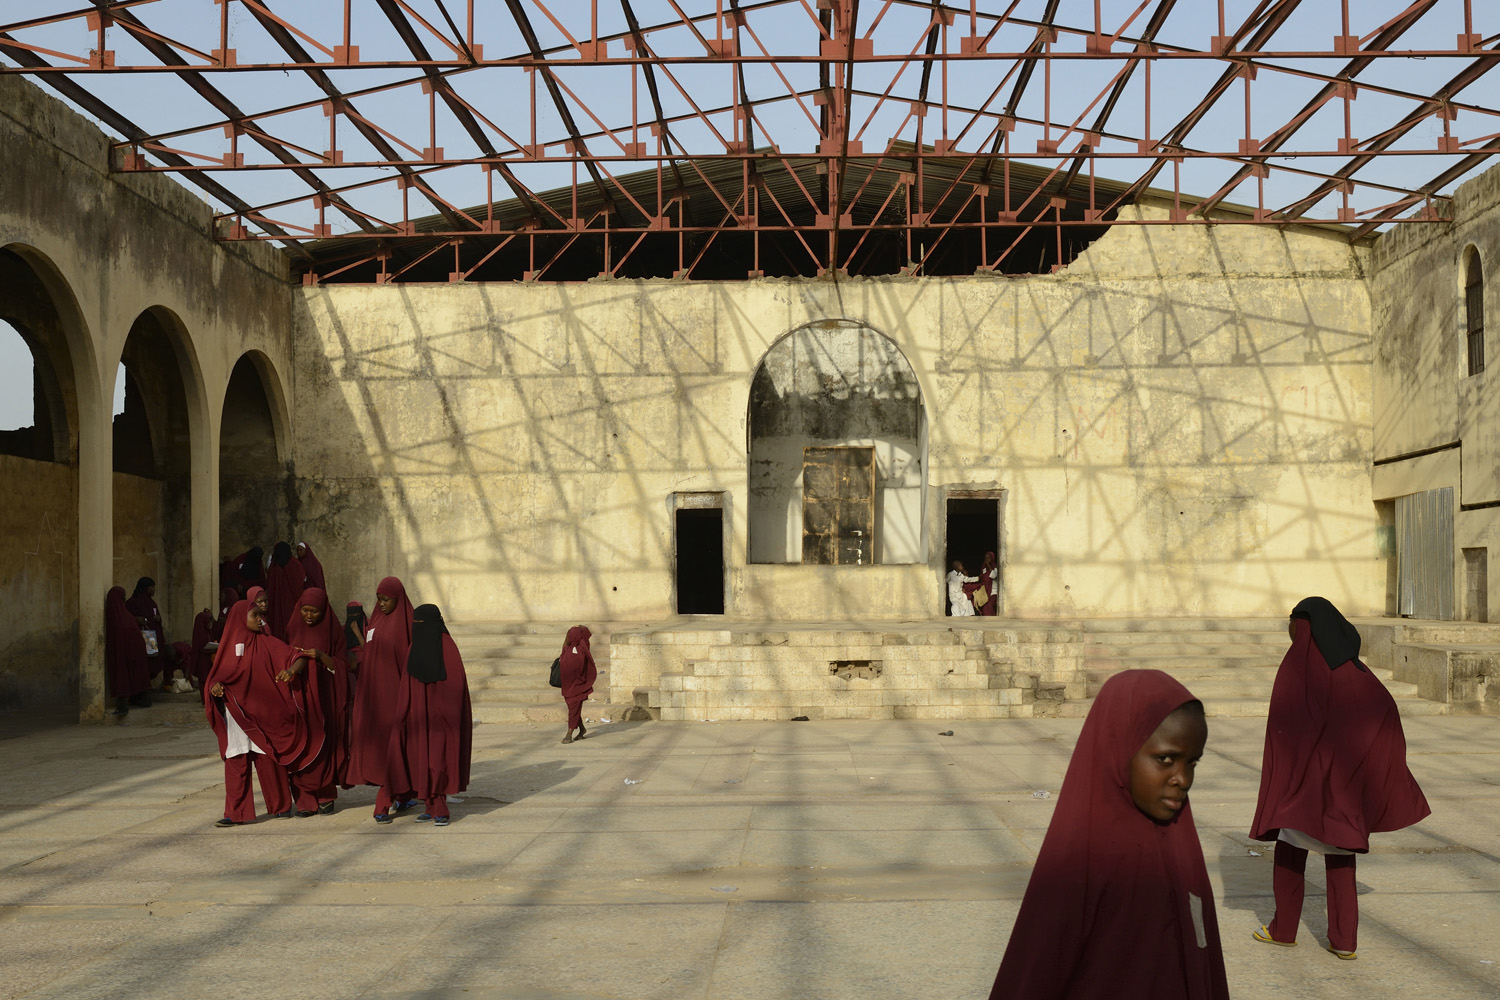 April 7, 2013. Muslim children come out of school at the Zahra Academy, which is a former christian church, Kaduna, Kaduna State, Nigeria.